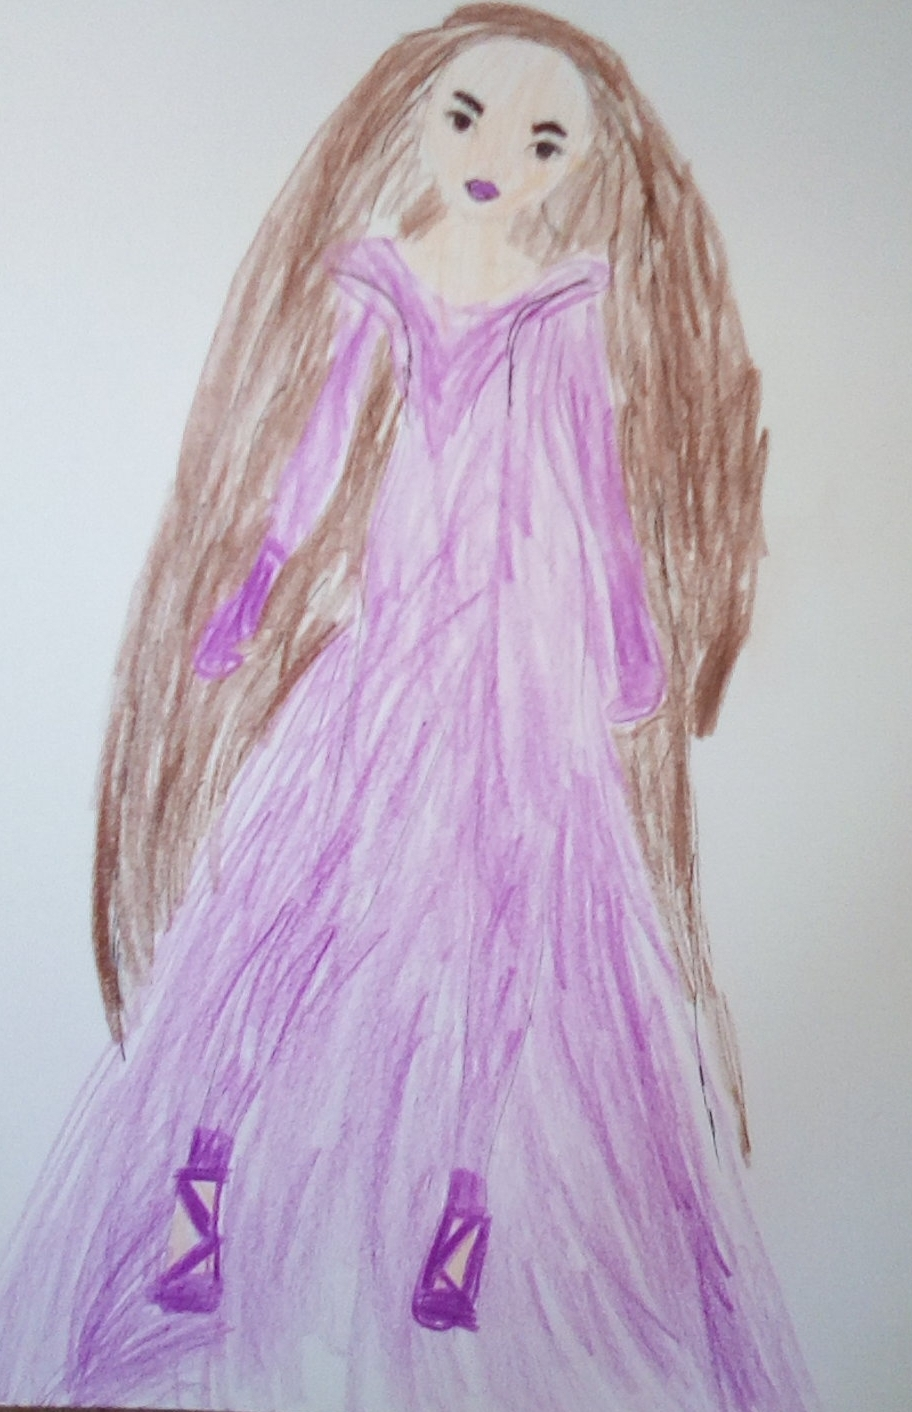 Kacey T., 10years, from Herne Bay